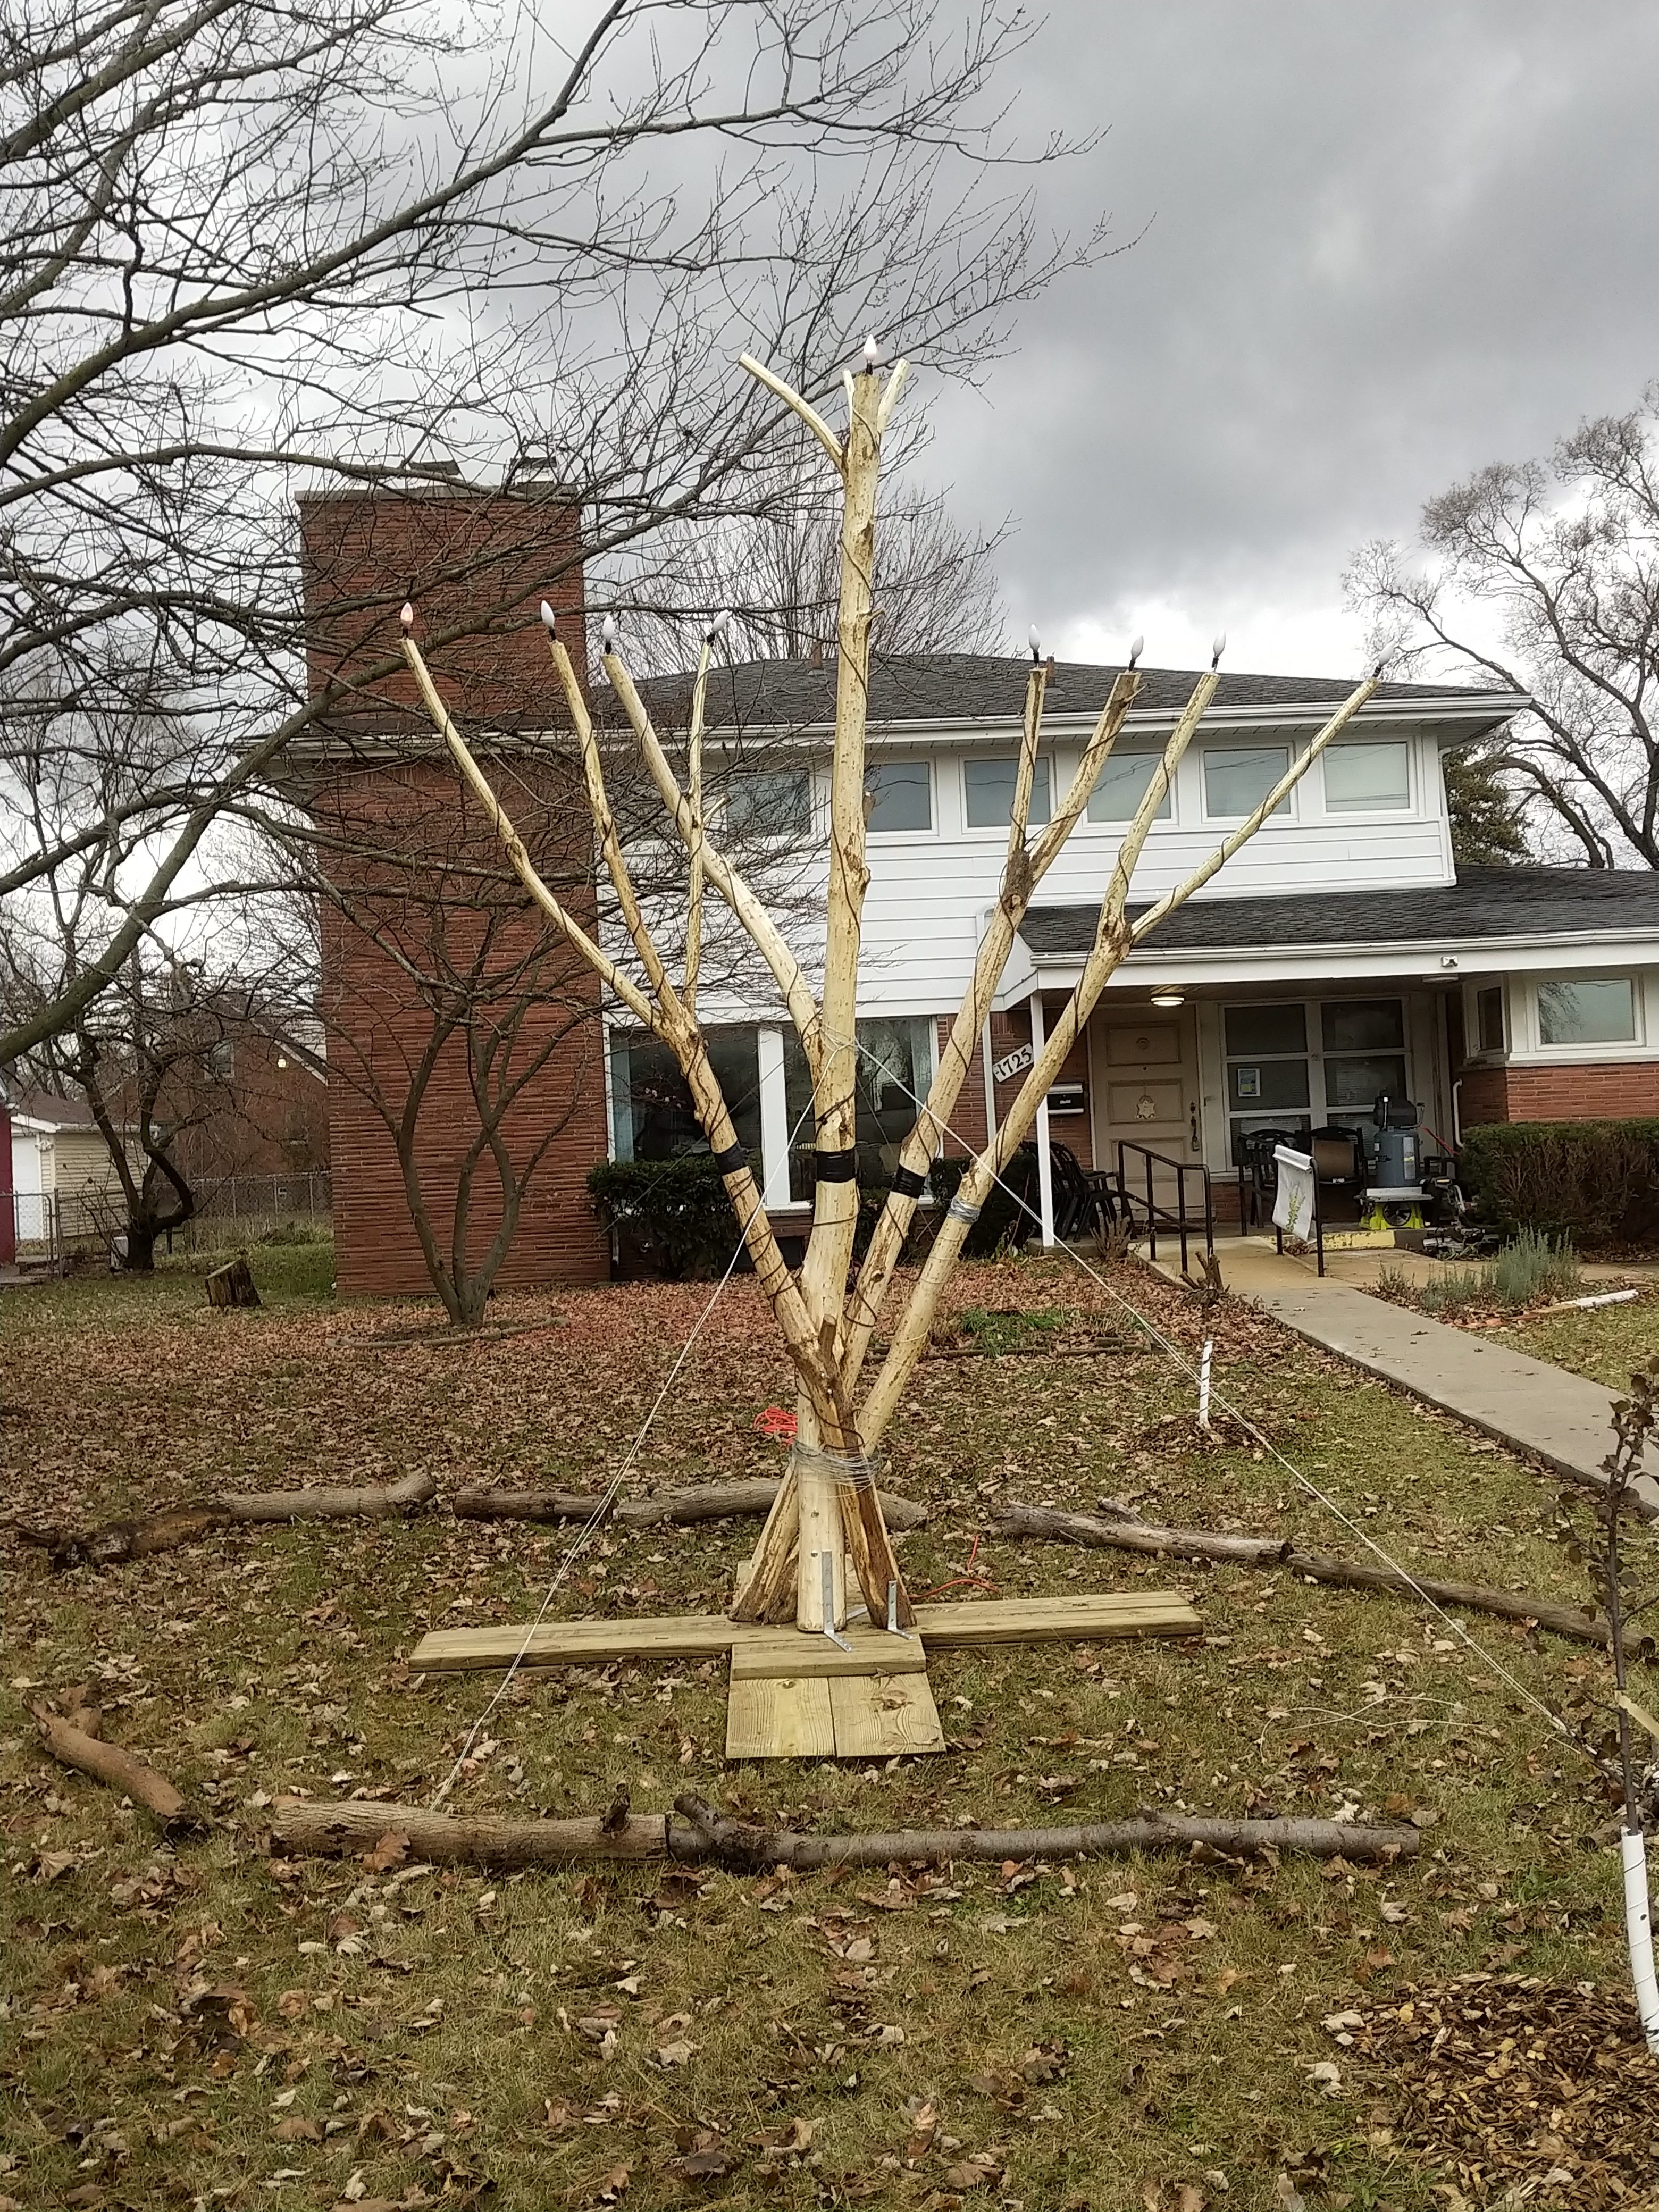 The new public menorah at Jewish Ferndale is made of catalpa branches.